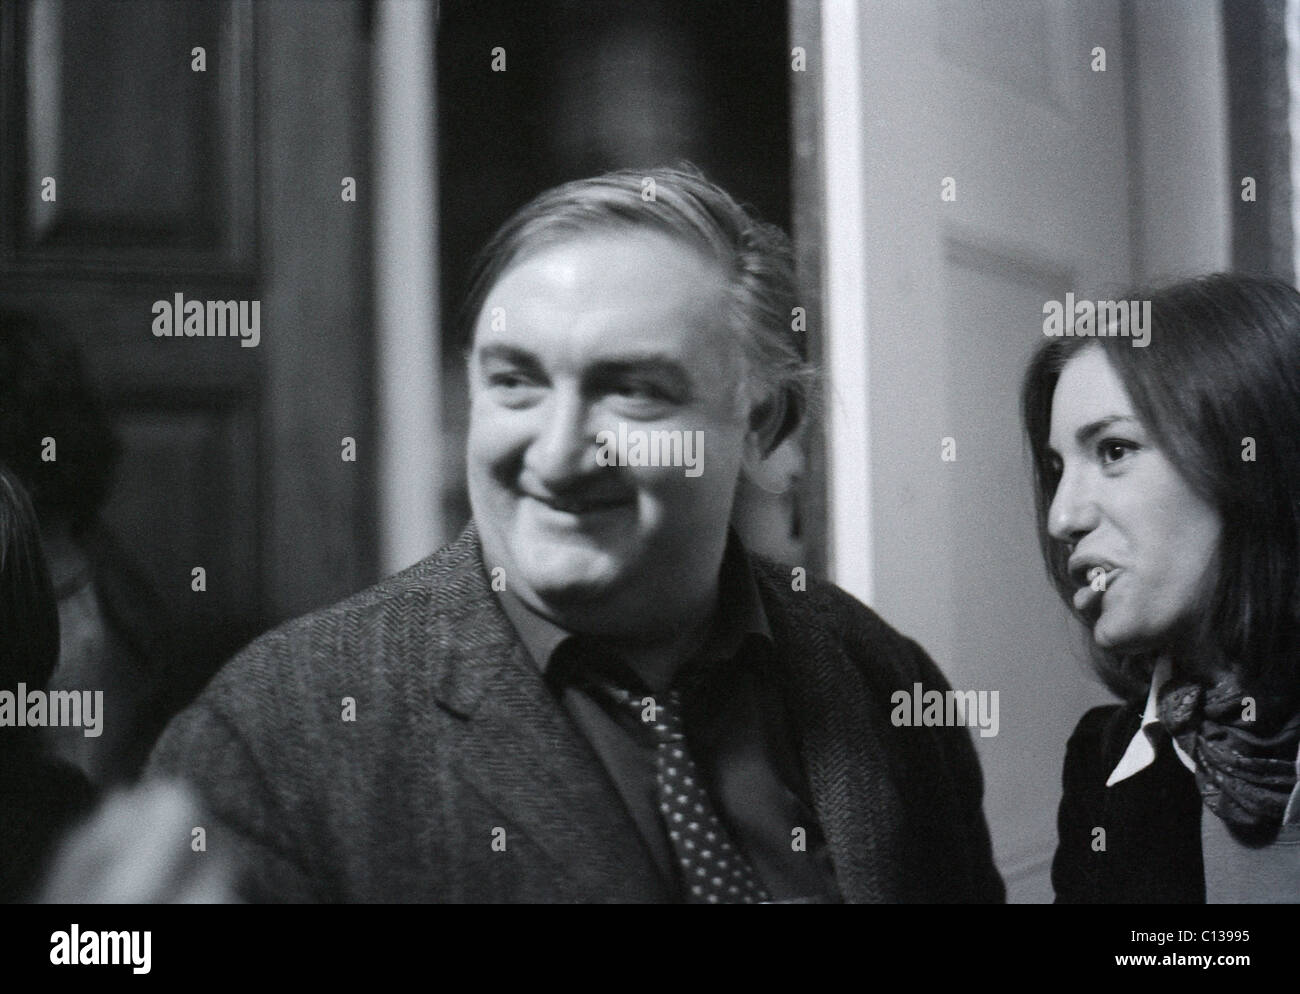 British architect Sir James Stirling at the RIBA Heinz Gallery exhibition of Cedric Prices's work London1975 - Stock Image